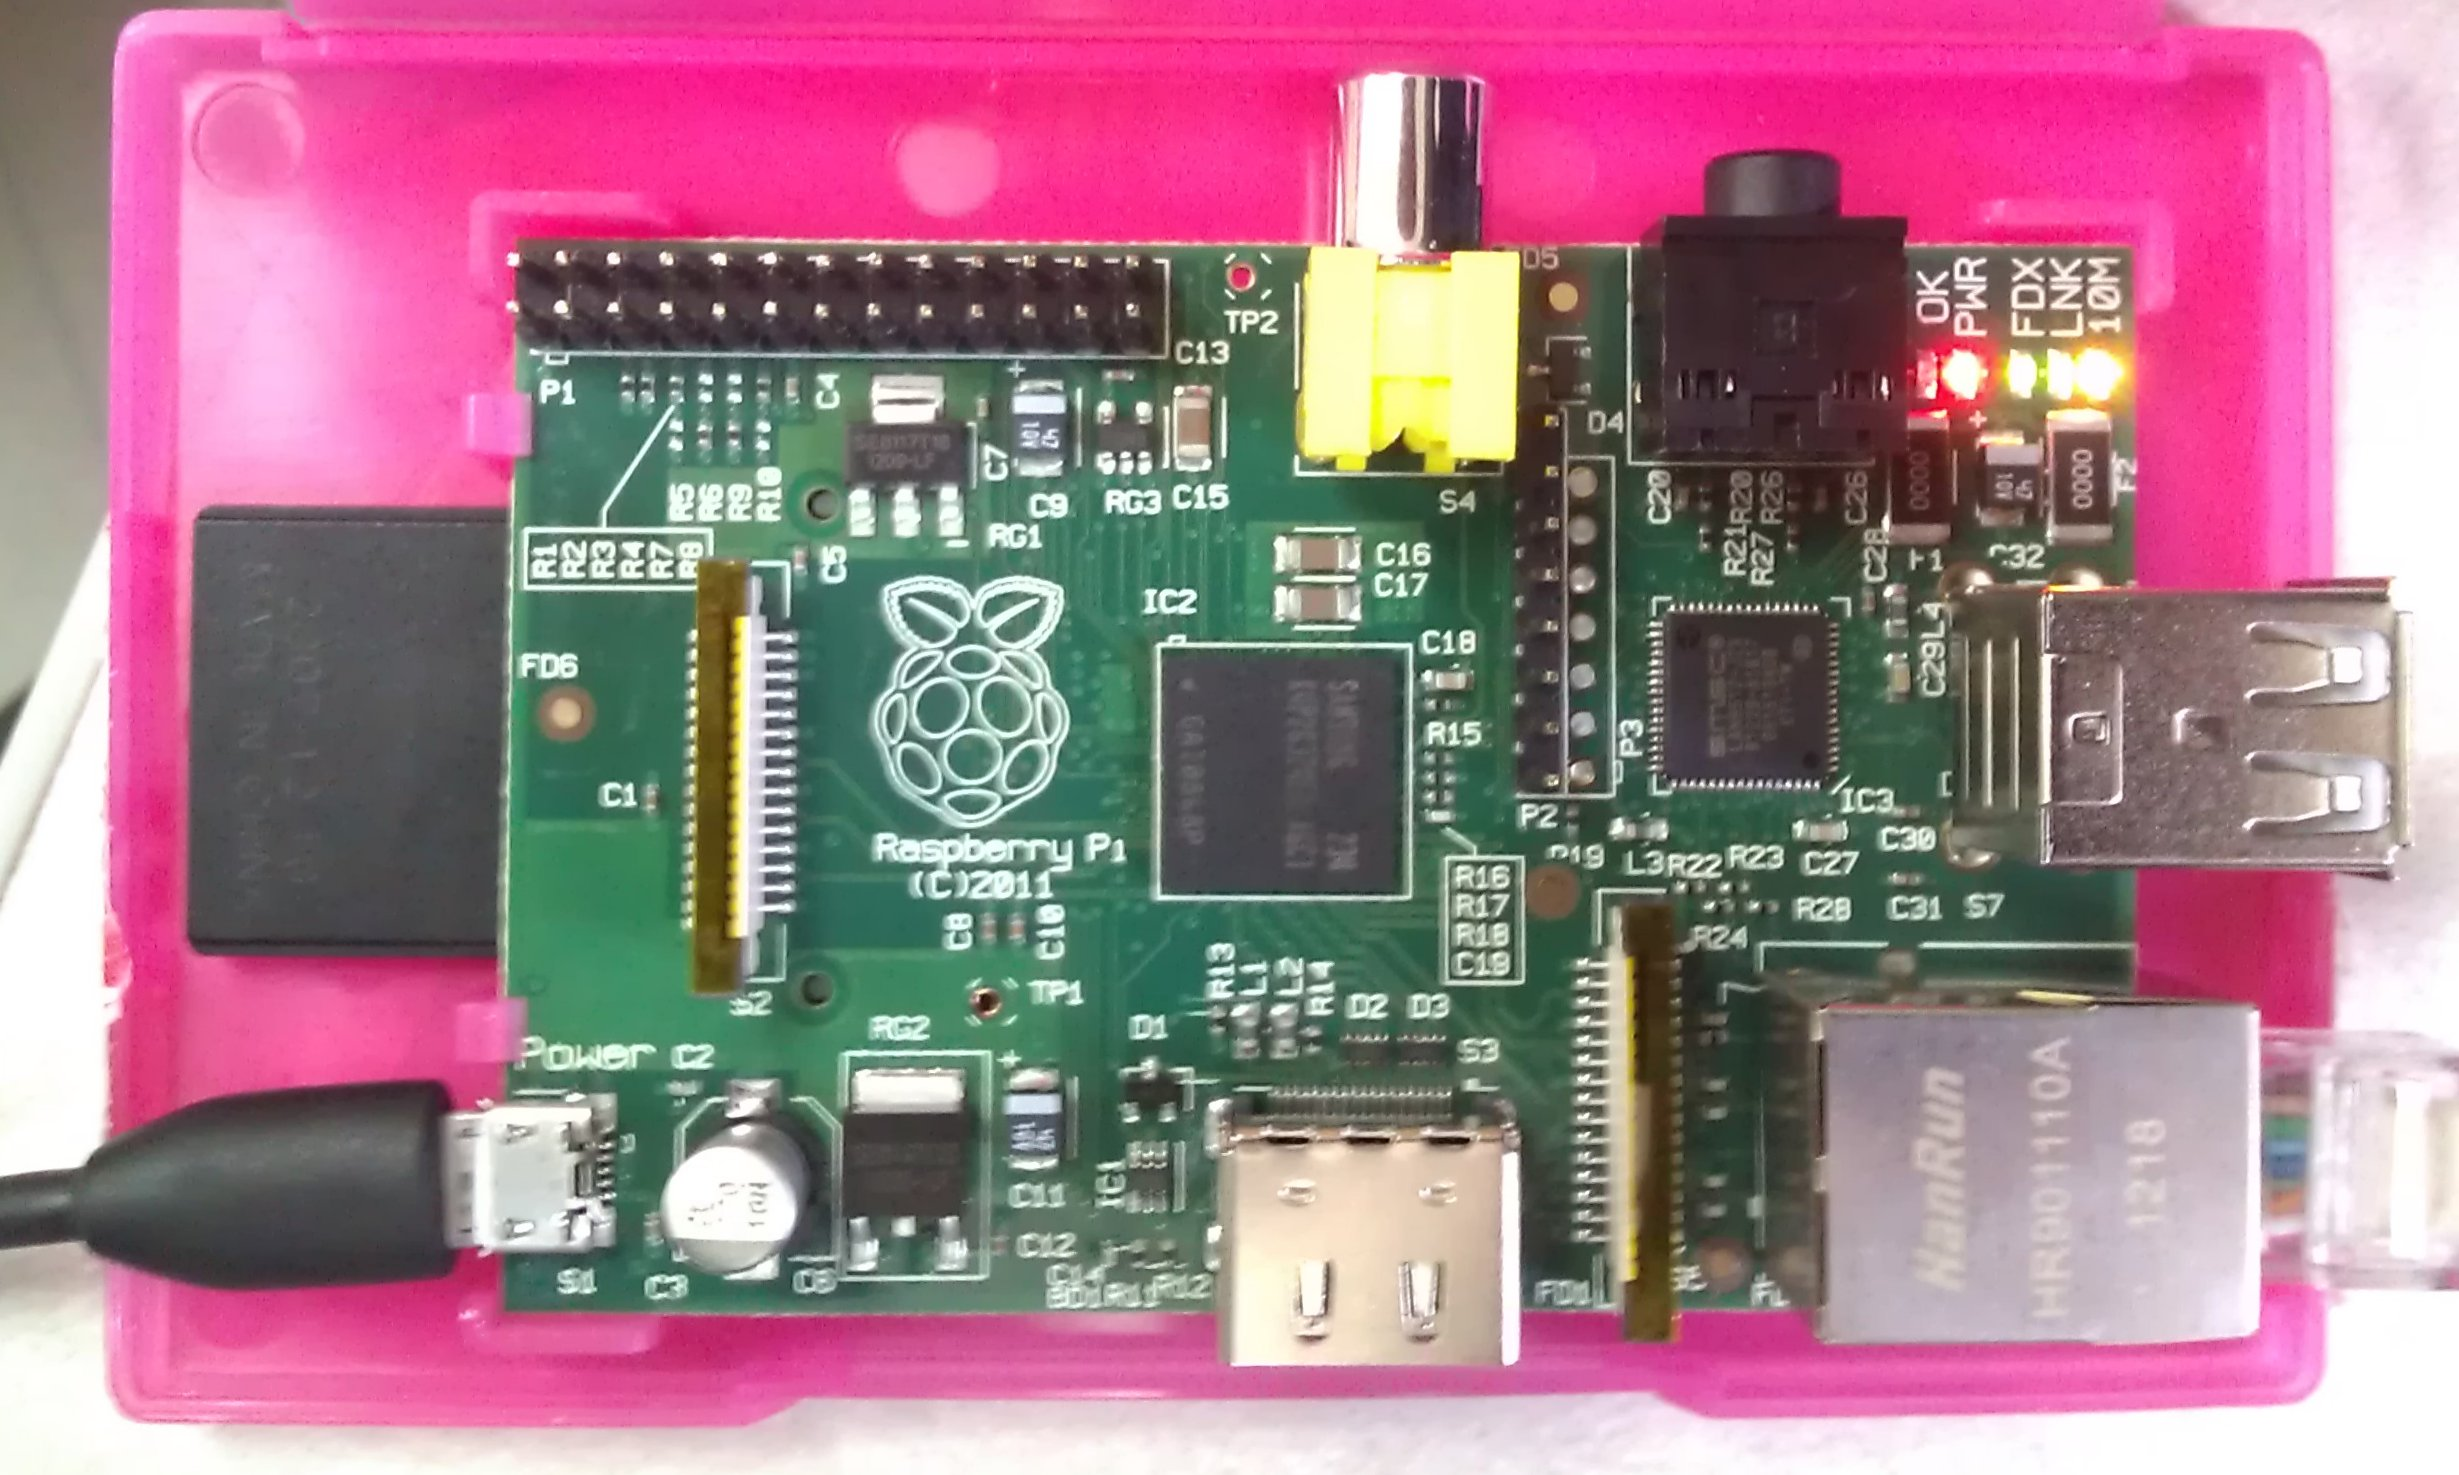 Raspberry Pi silently churning out documents via Mayan EDMS